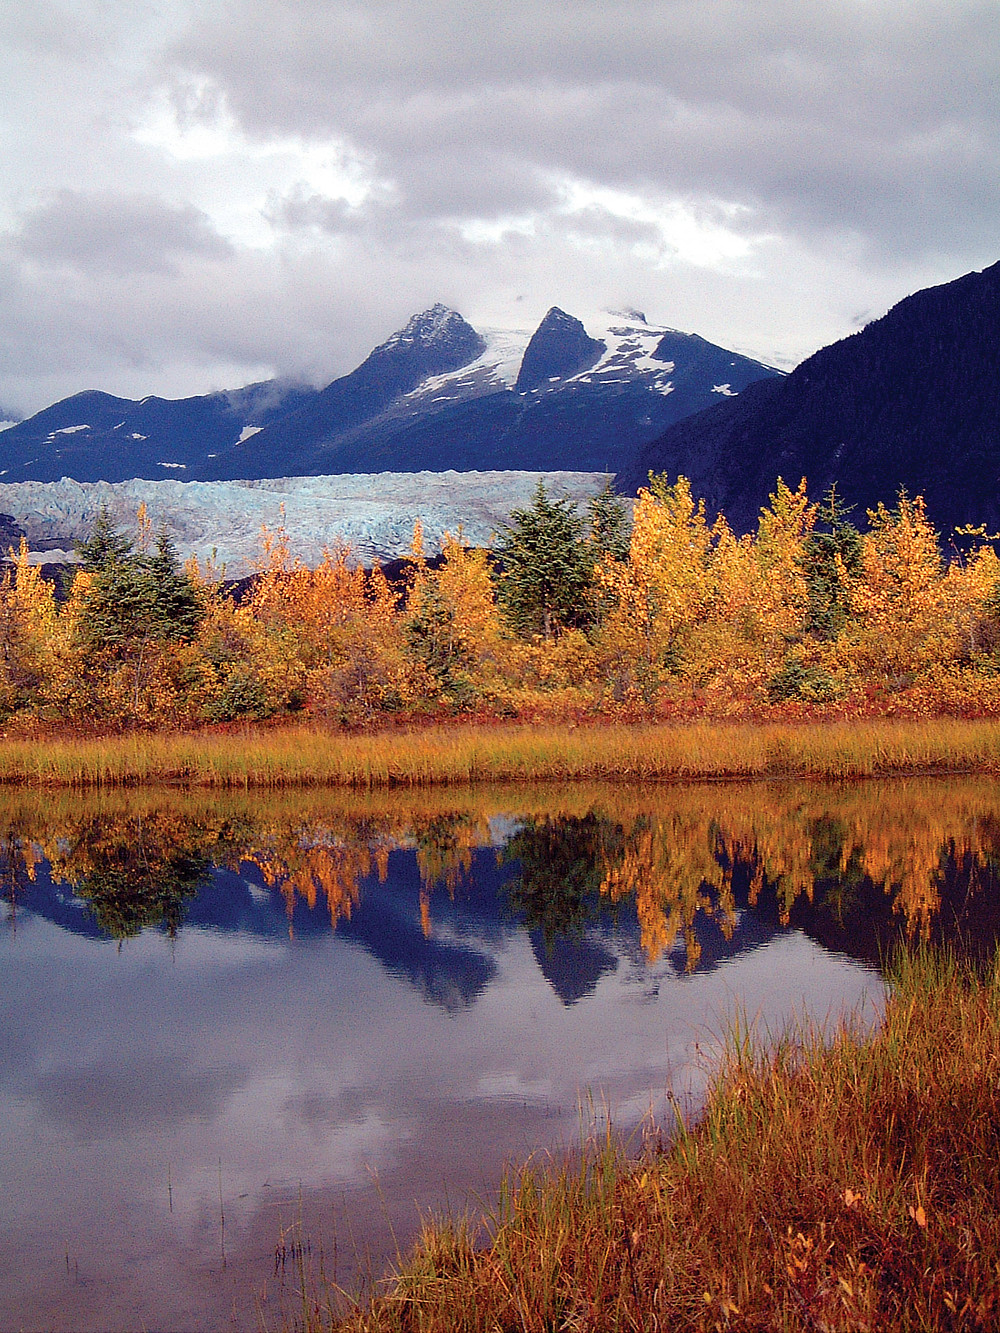 Crystal clear water reflects fall foliage and glacier in Juneau, Alaska.